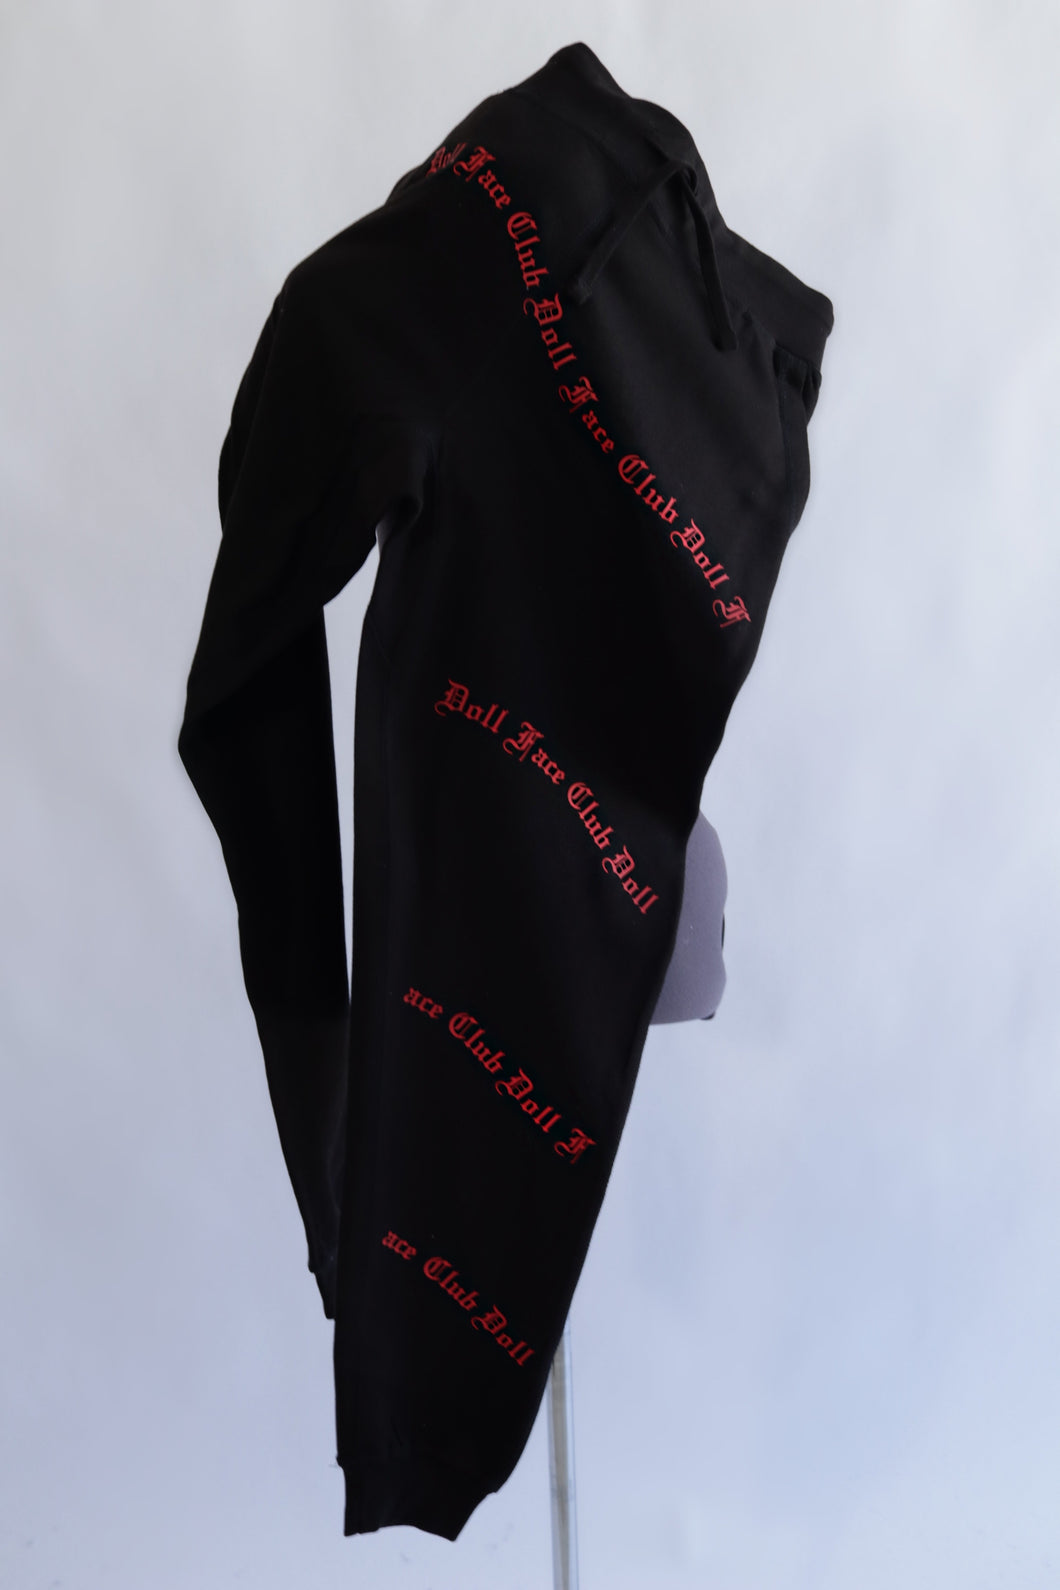 XL Black and Red Sweats